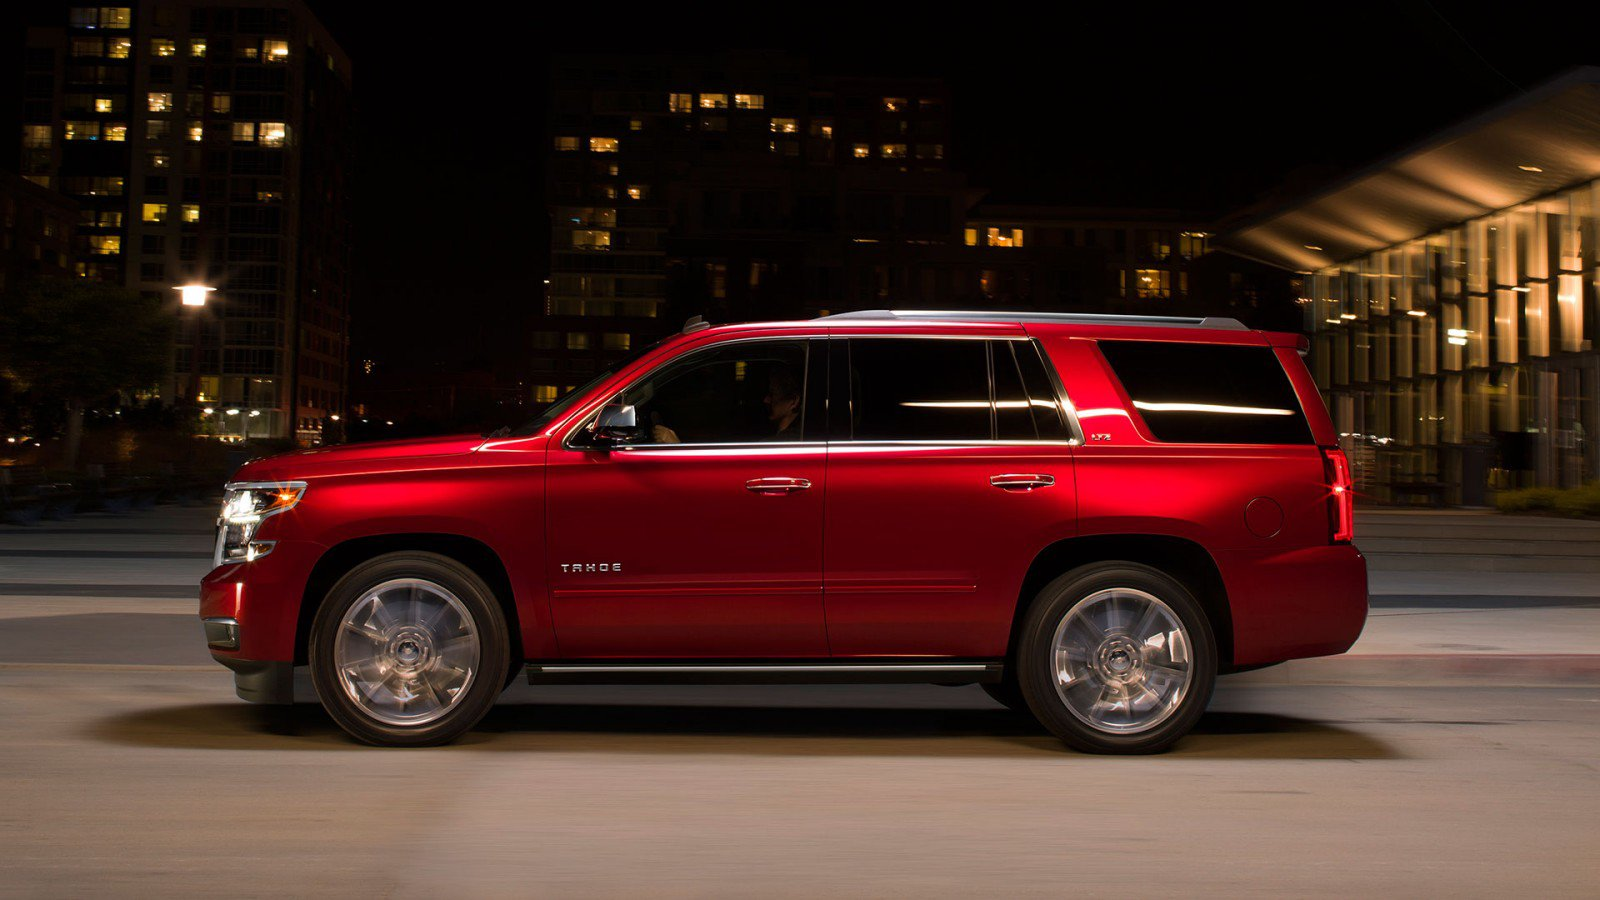 Chevy Tahoe Lease Prices >> Chevy Tahoe, Granite City, IL, New & Used - Weber Chevrolet